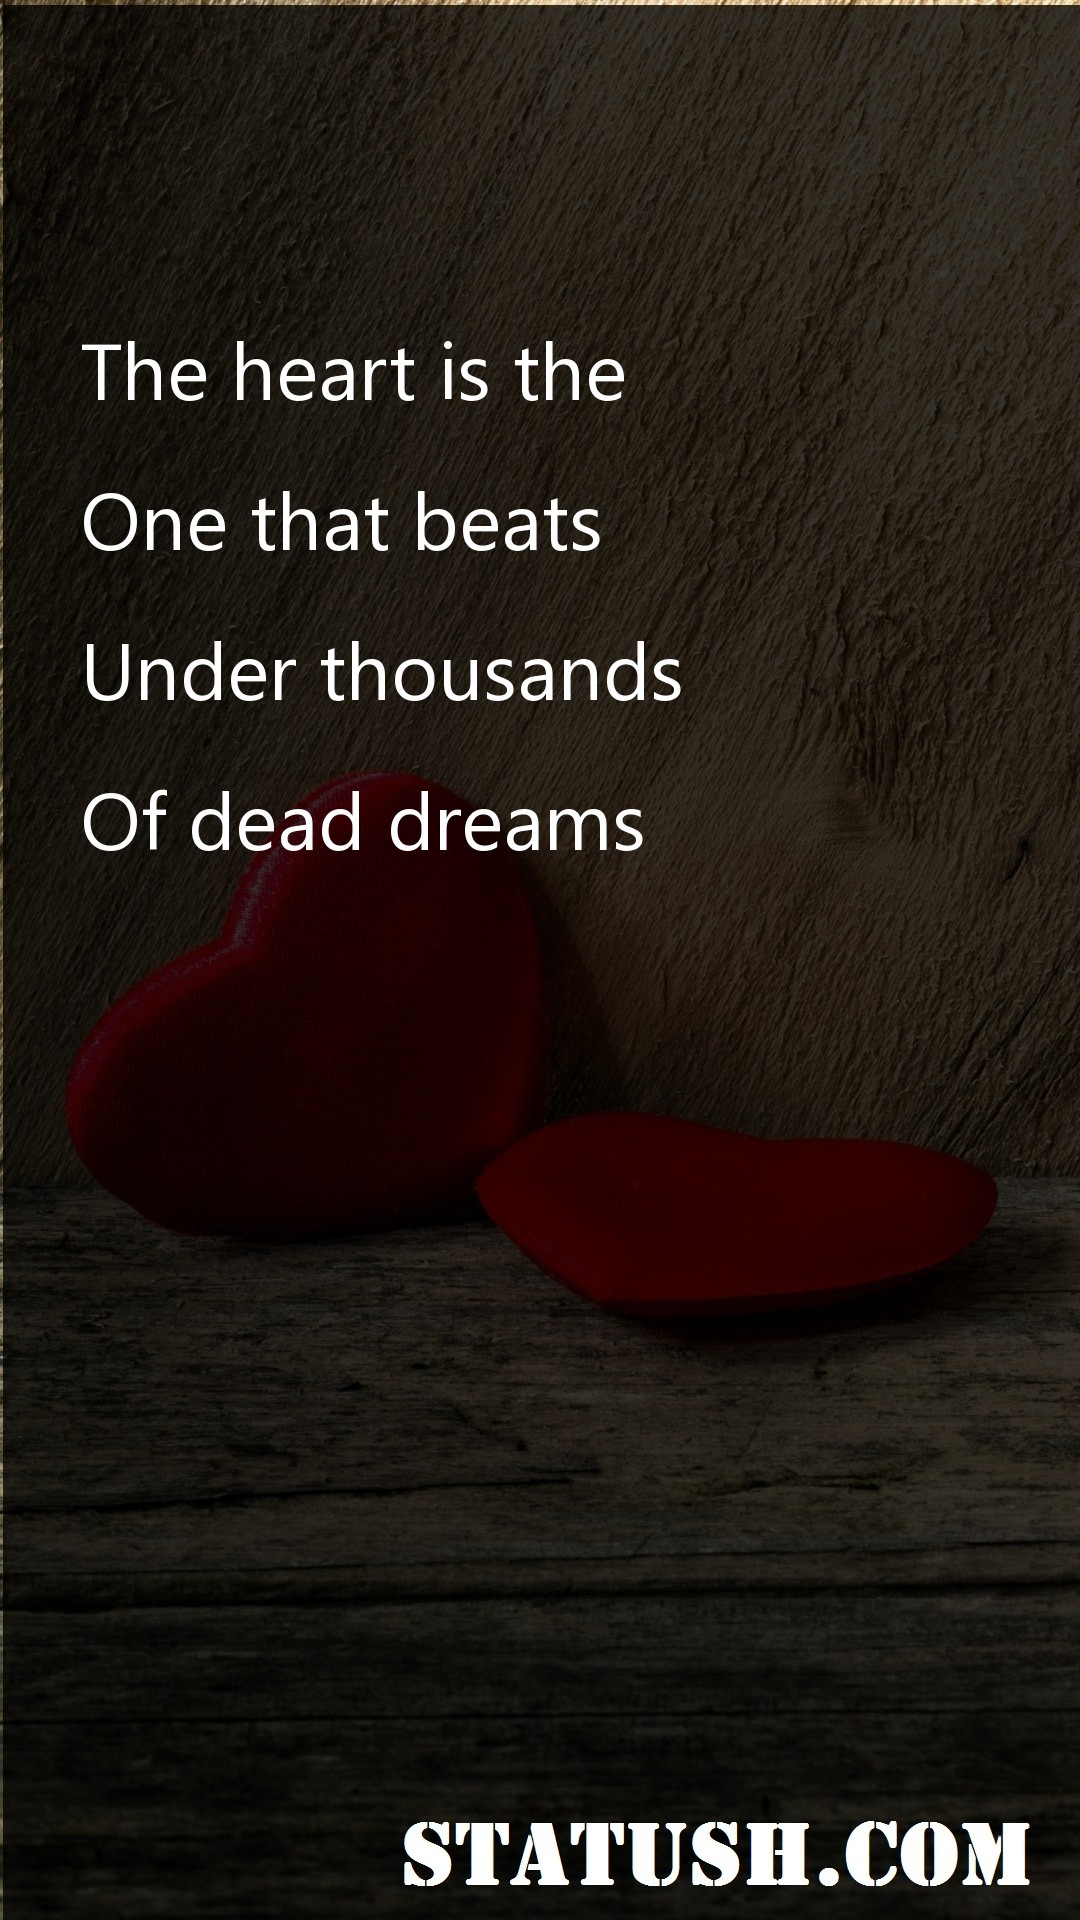 The heart is the one that beats